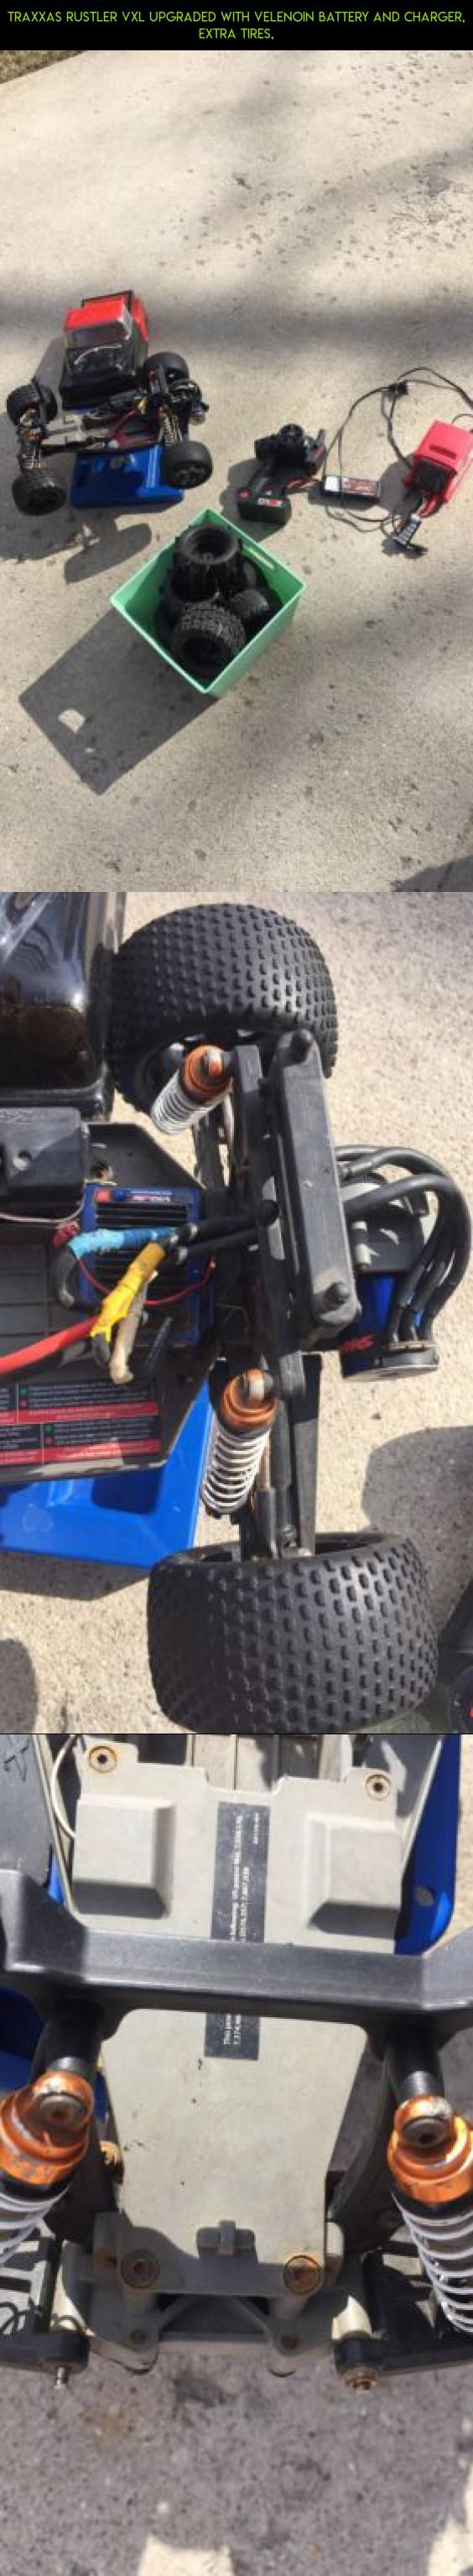 traxxas rustler vxl upgraded With Velenoin Battery And Charger, Extra Tires, #racing #gadgets #rustler #parts #kit #shopping #plans #traxxas #products #fpv #technology #tech #camera #drone #tires